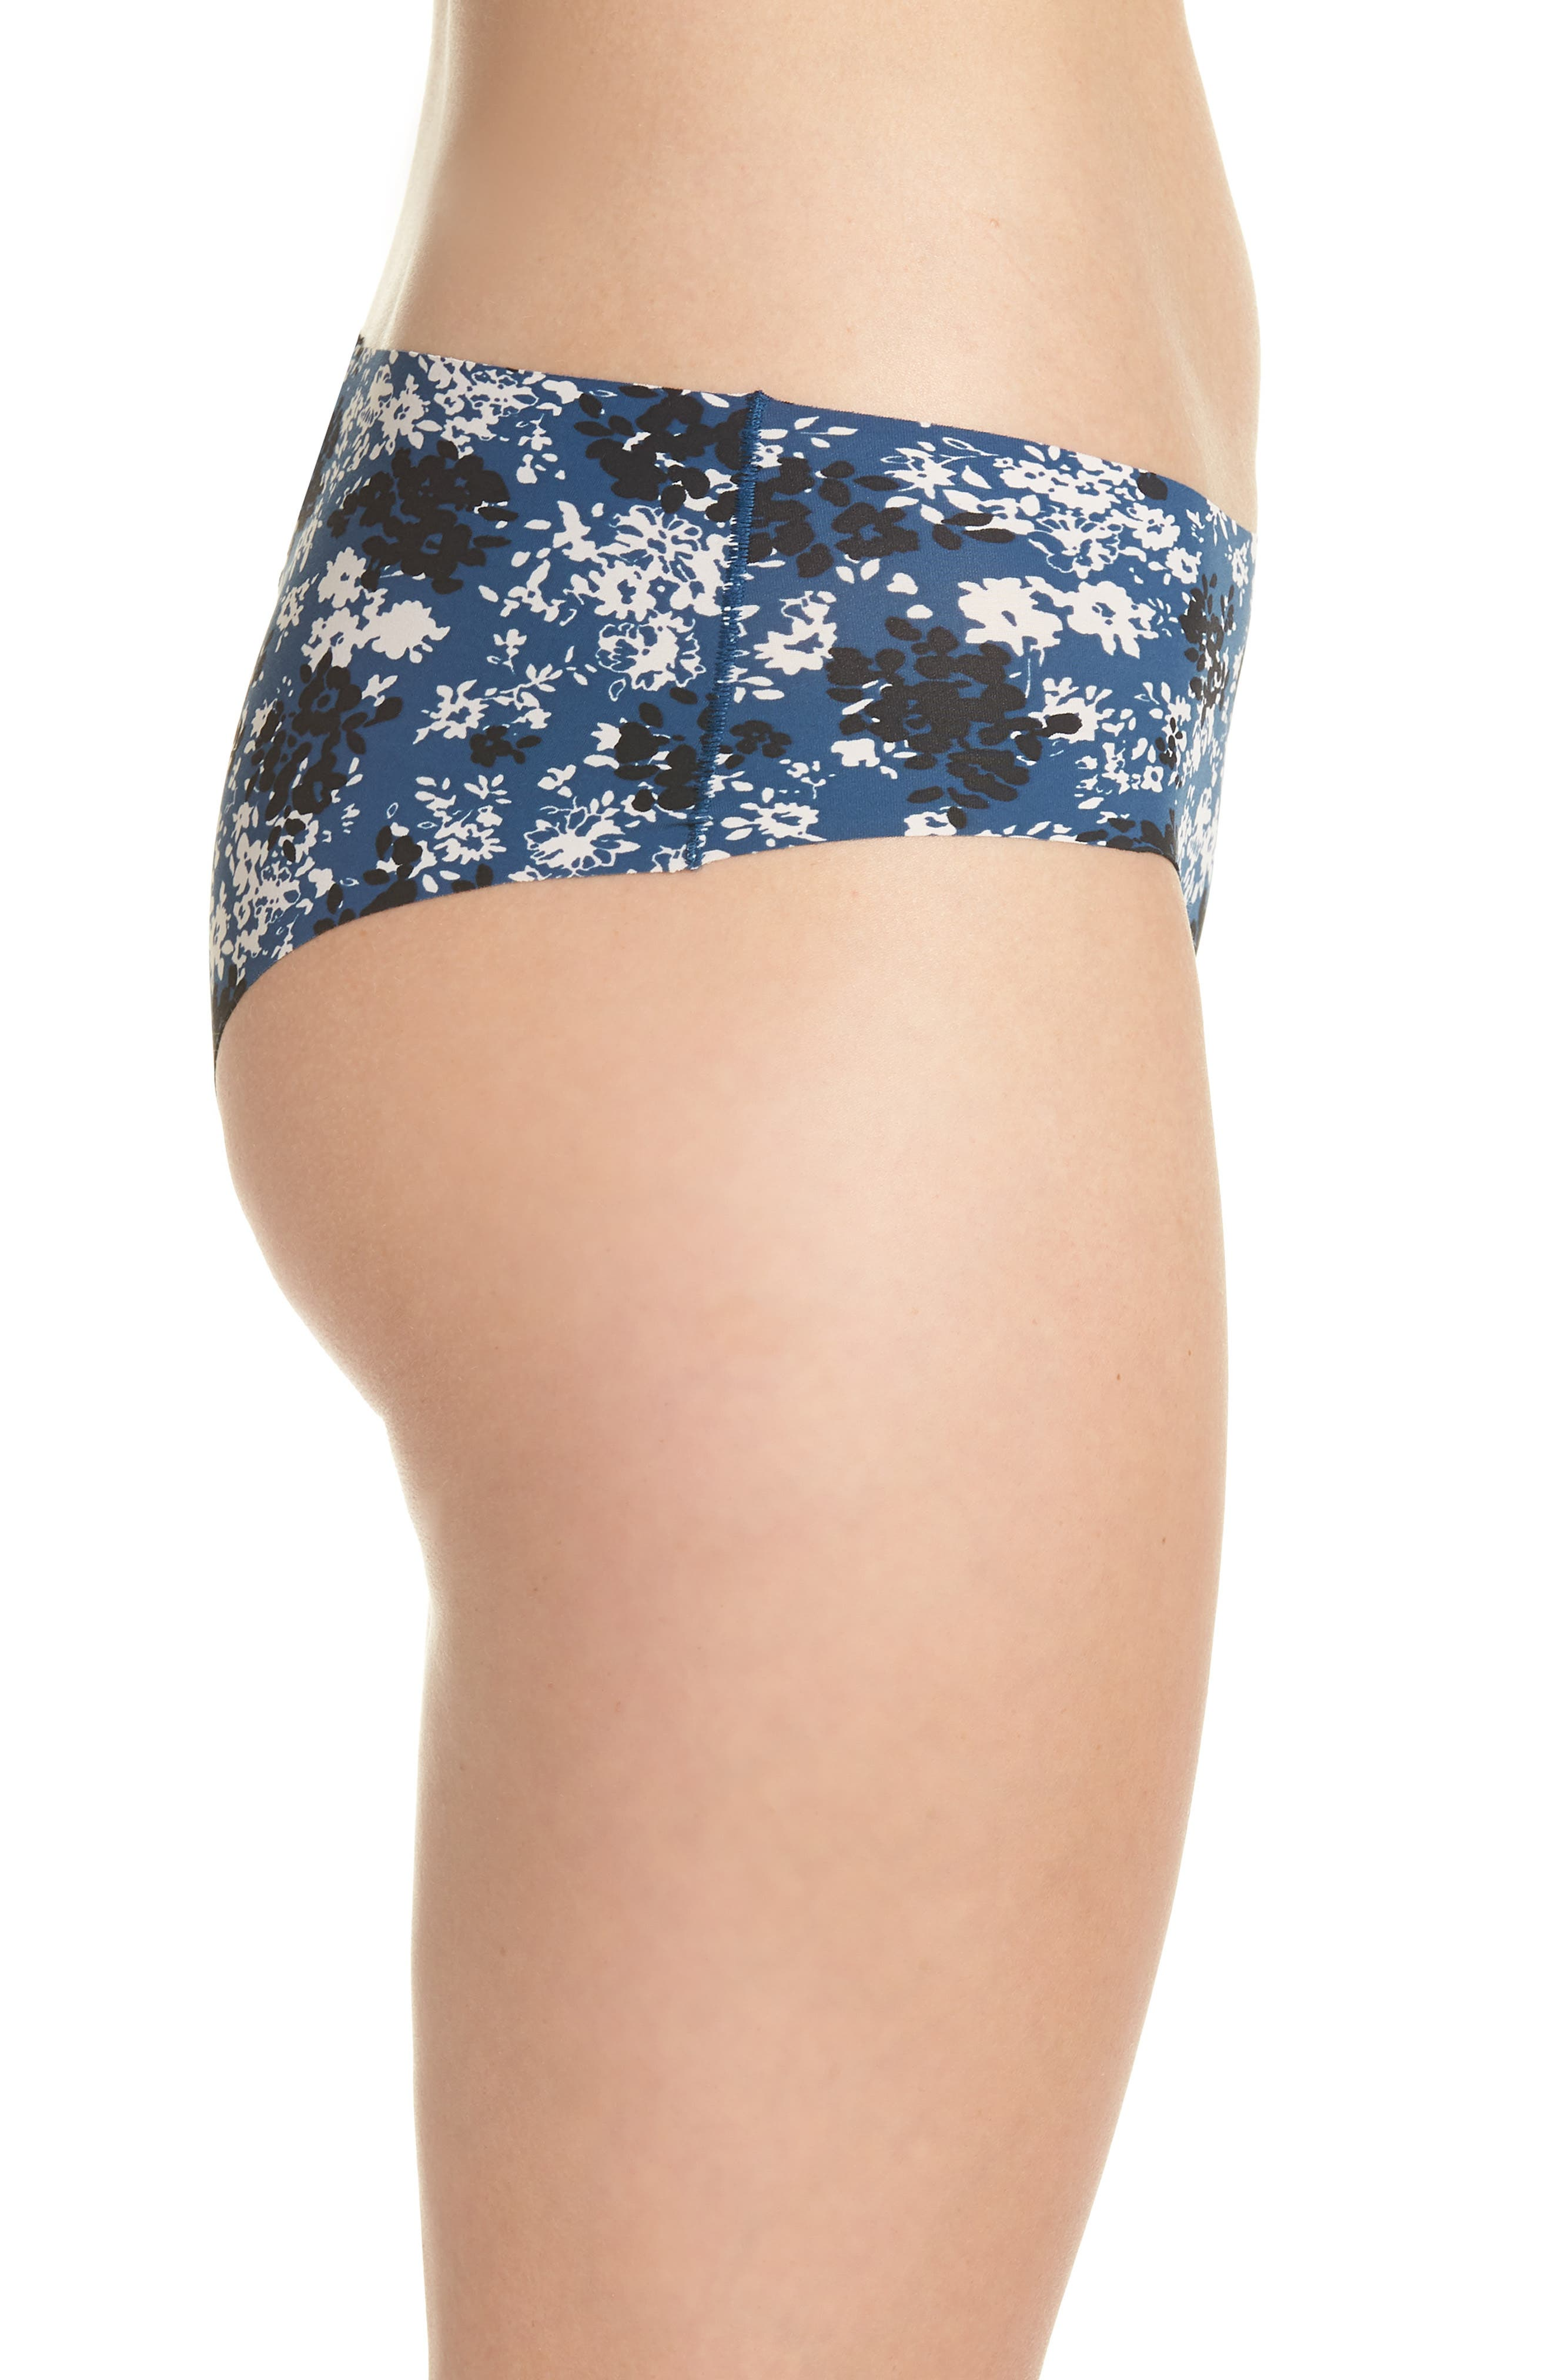 Invisibles Hipster Briefs,                             Alternate thumbnail 5, color,                             Simple Floral/ Lyria Blue